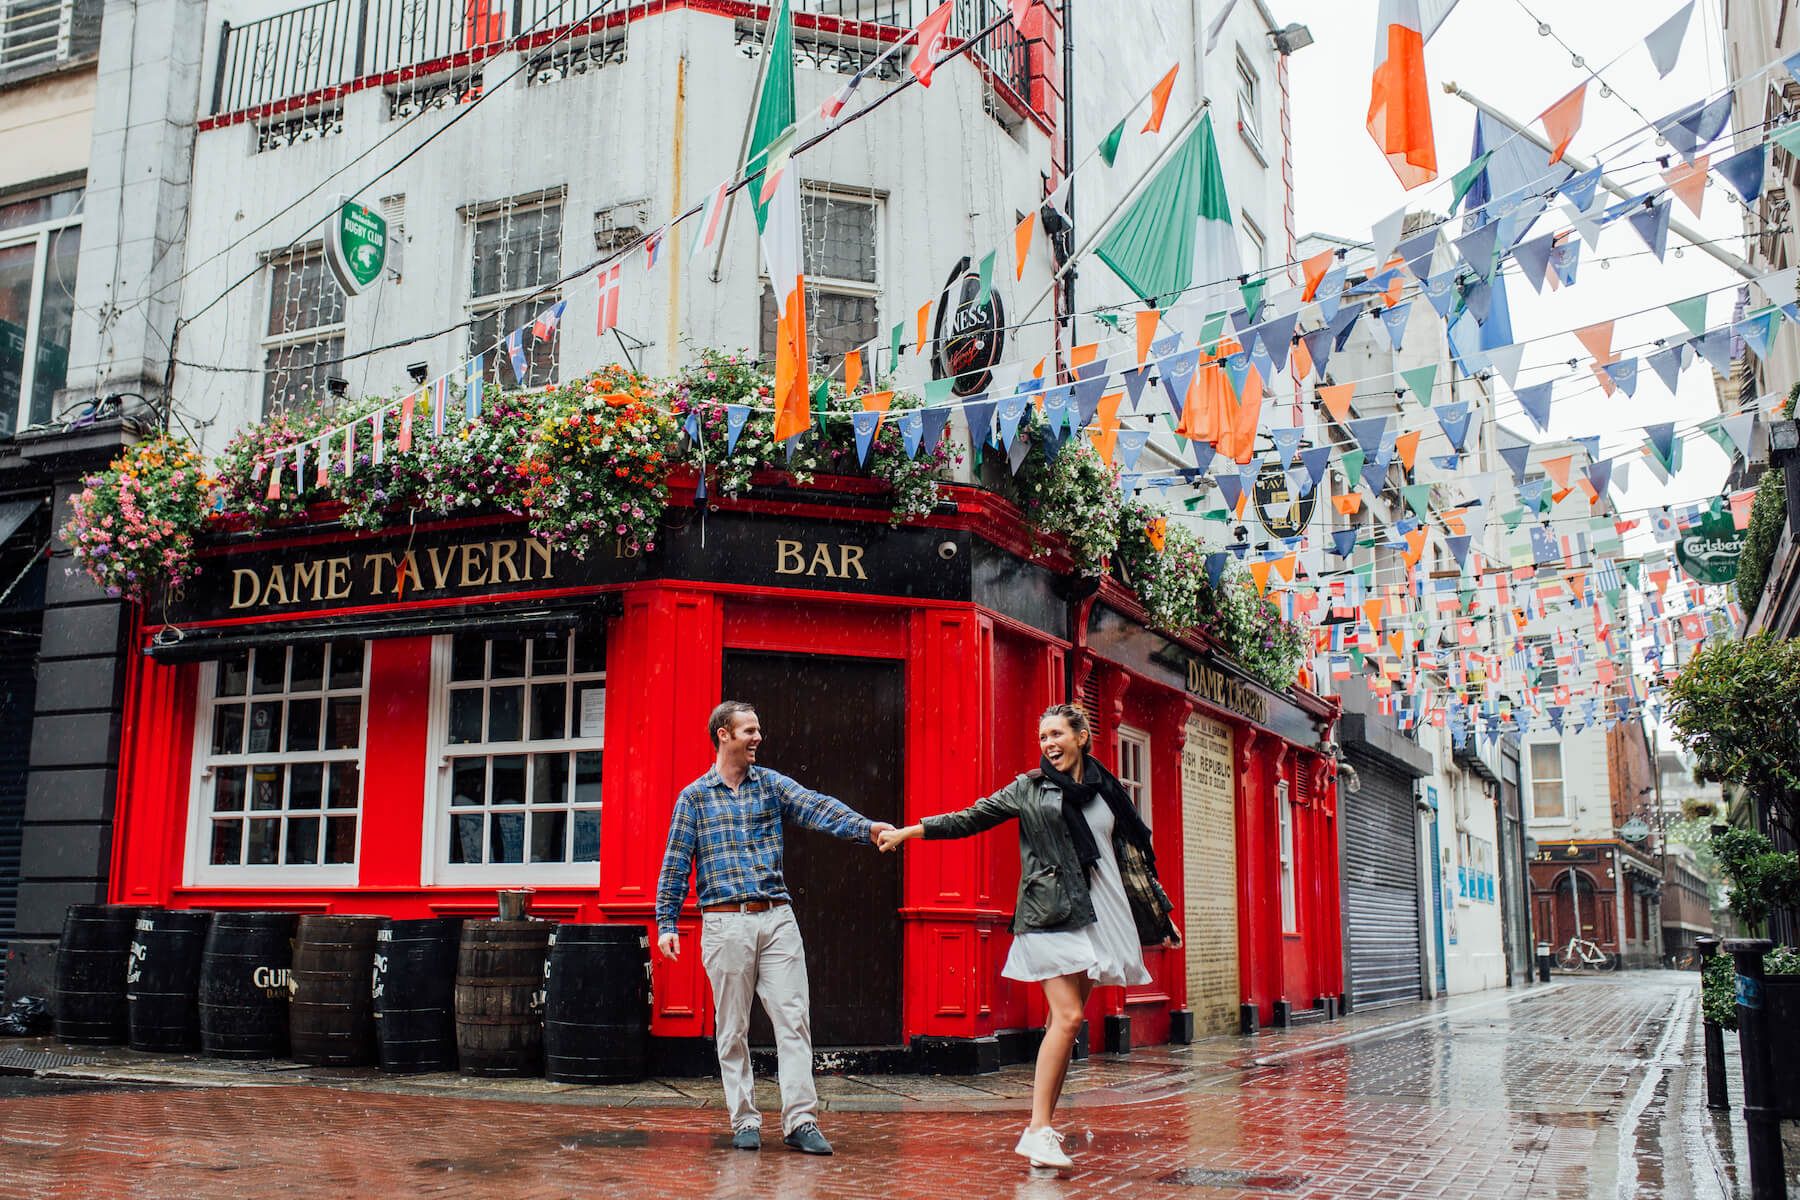 couple dancing in the streets in front of a pub in Dublin, Ireland